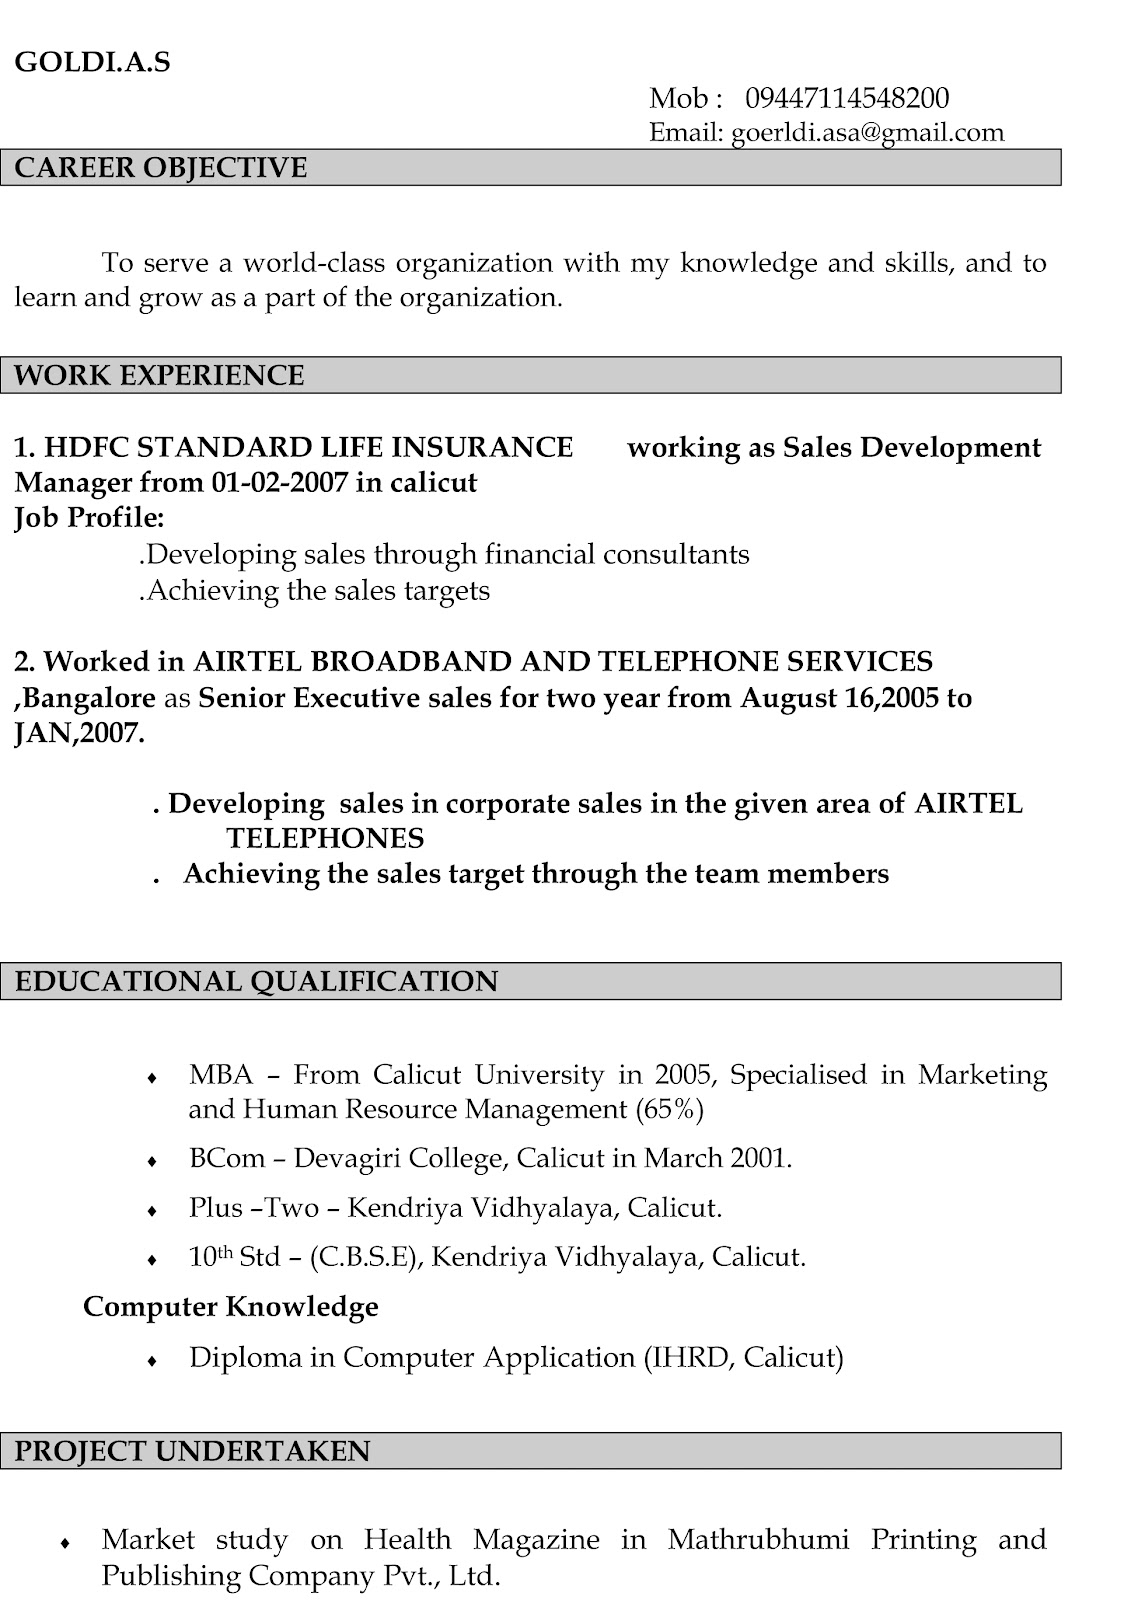 cover letter for consulting job cover letter mckinsey consulting cover letter examples samples cover letter for government job aploon